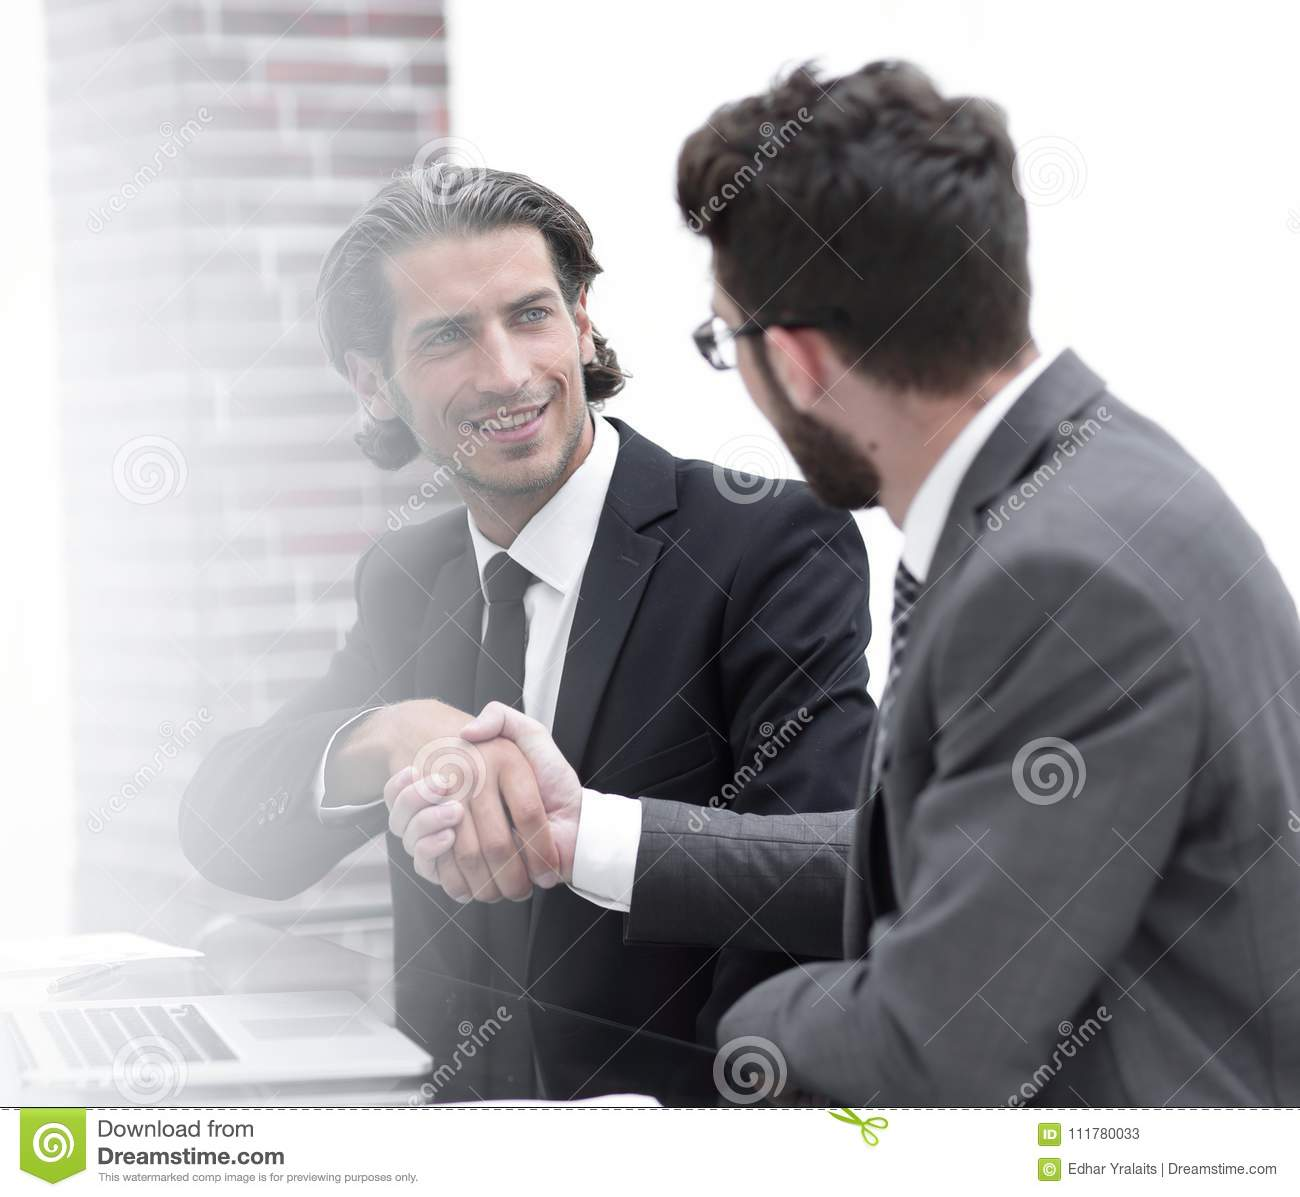 Background image .colleagues shaking hands